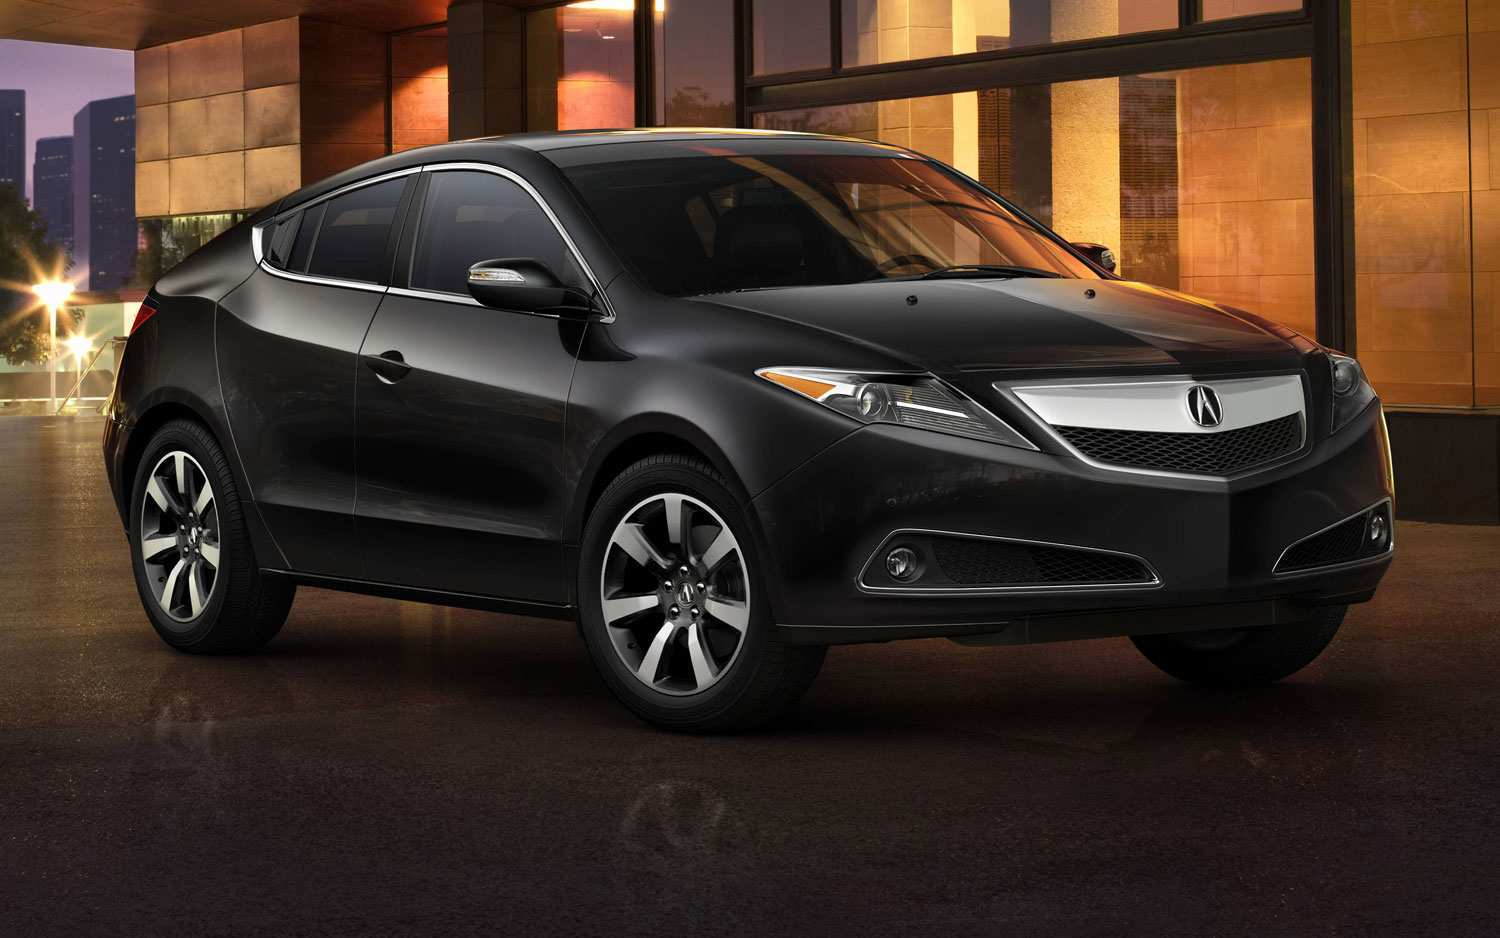 21 New The Acura Zdx 2019 Price First Drive Reviews for The Acura Zdx 2019 Price First Drive